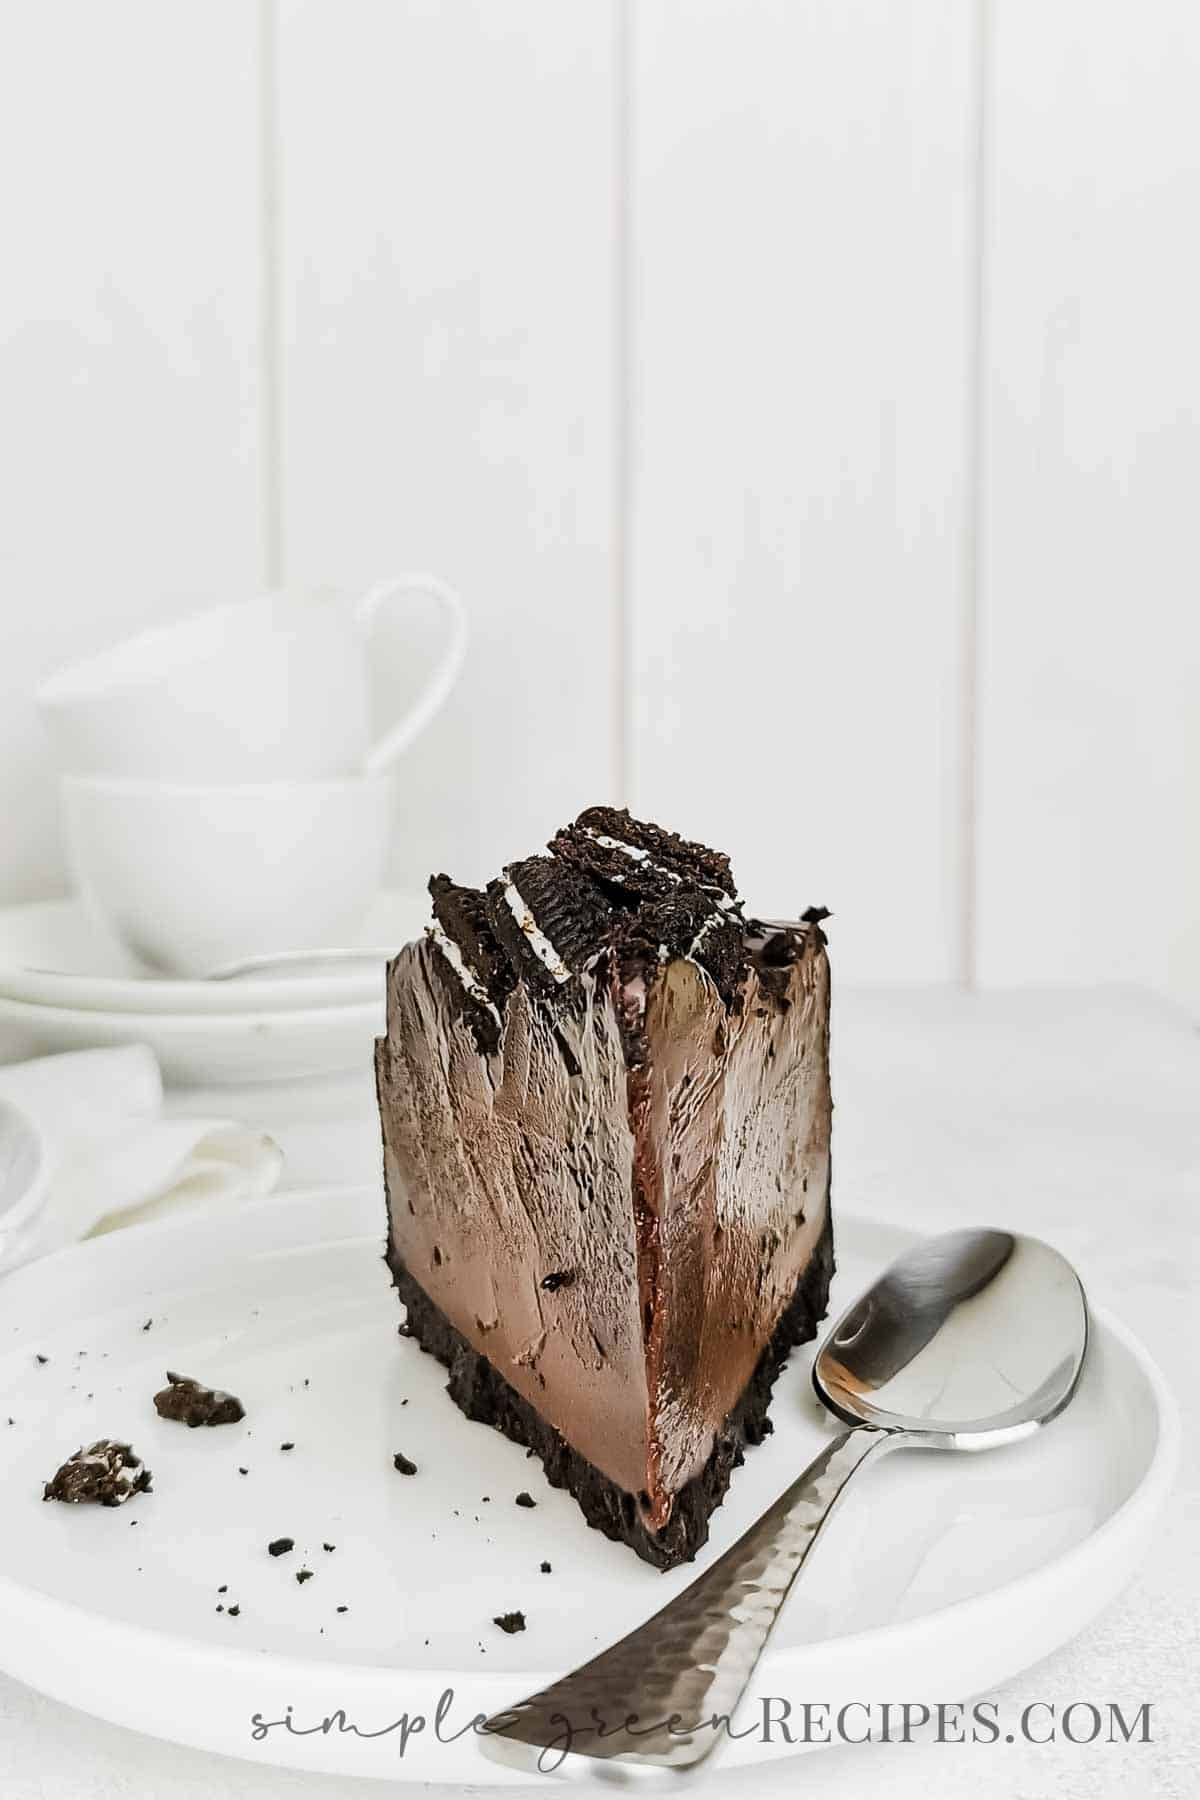 Slice of chocolate cheesecake topped with cookies, on a white plate and next to a silver teaspoon.